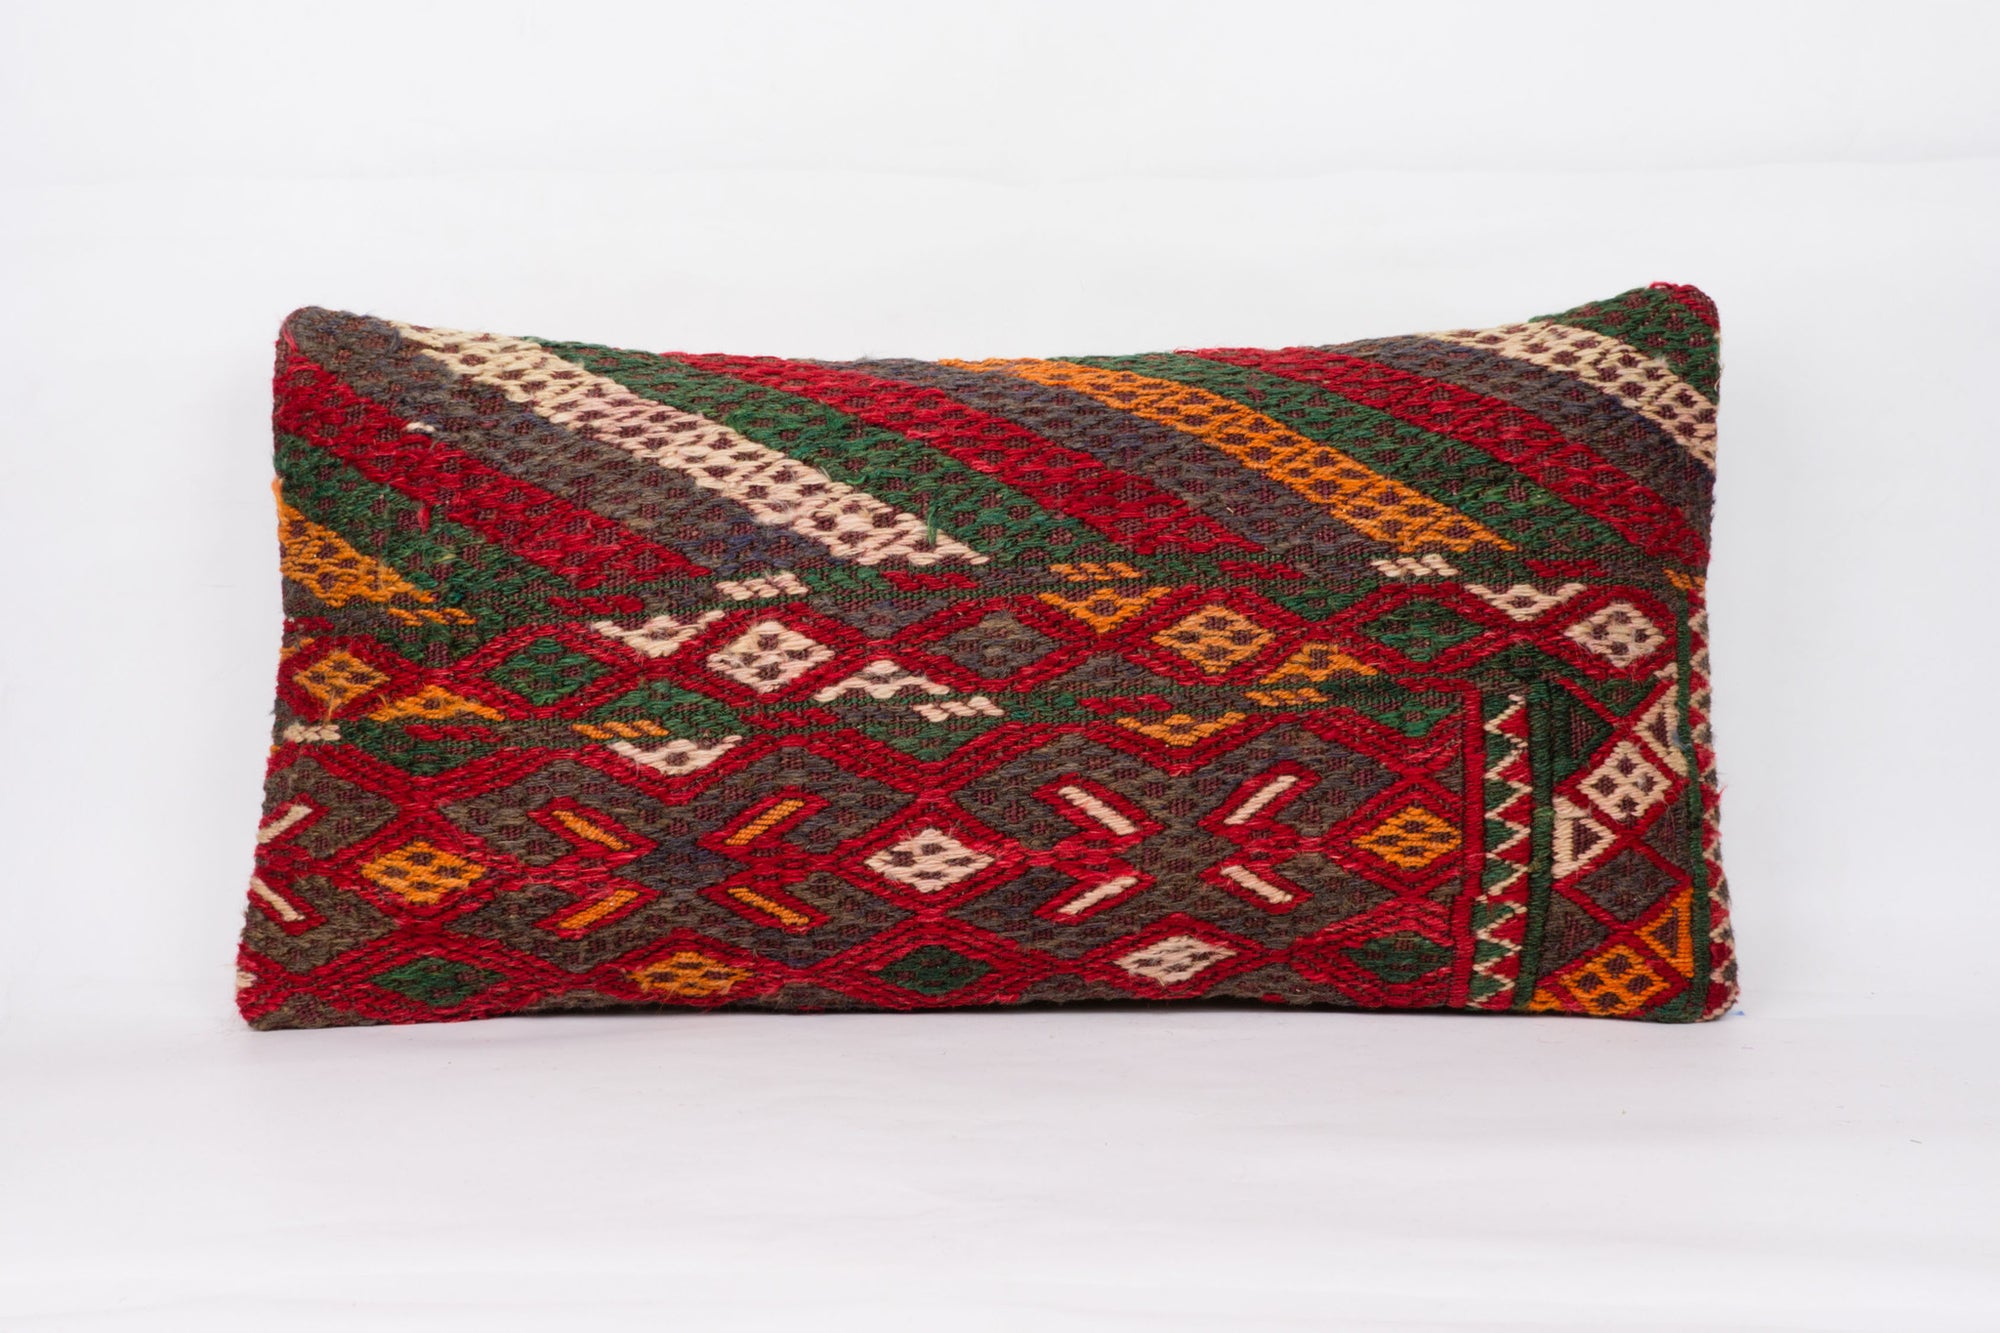 Geometric Red Kilim Pillow Cover 12x24 4327